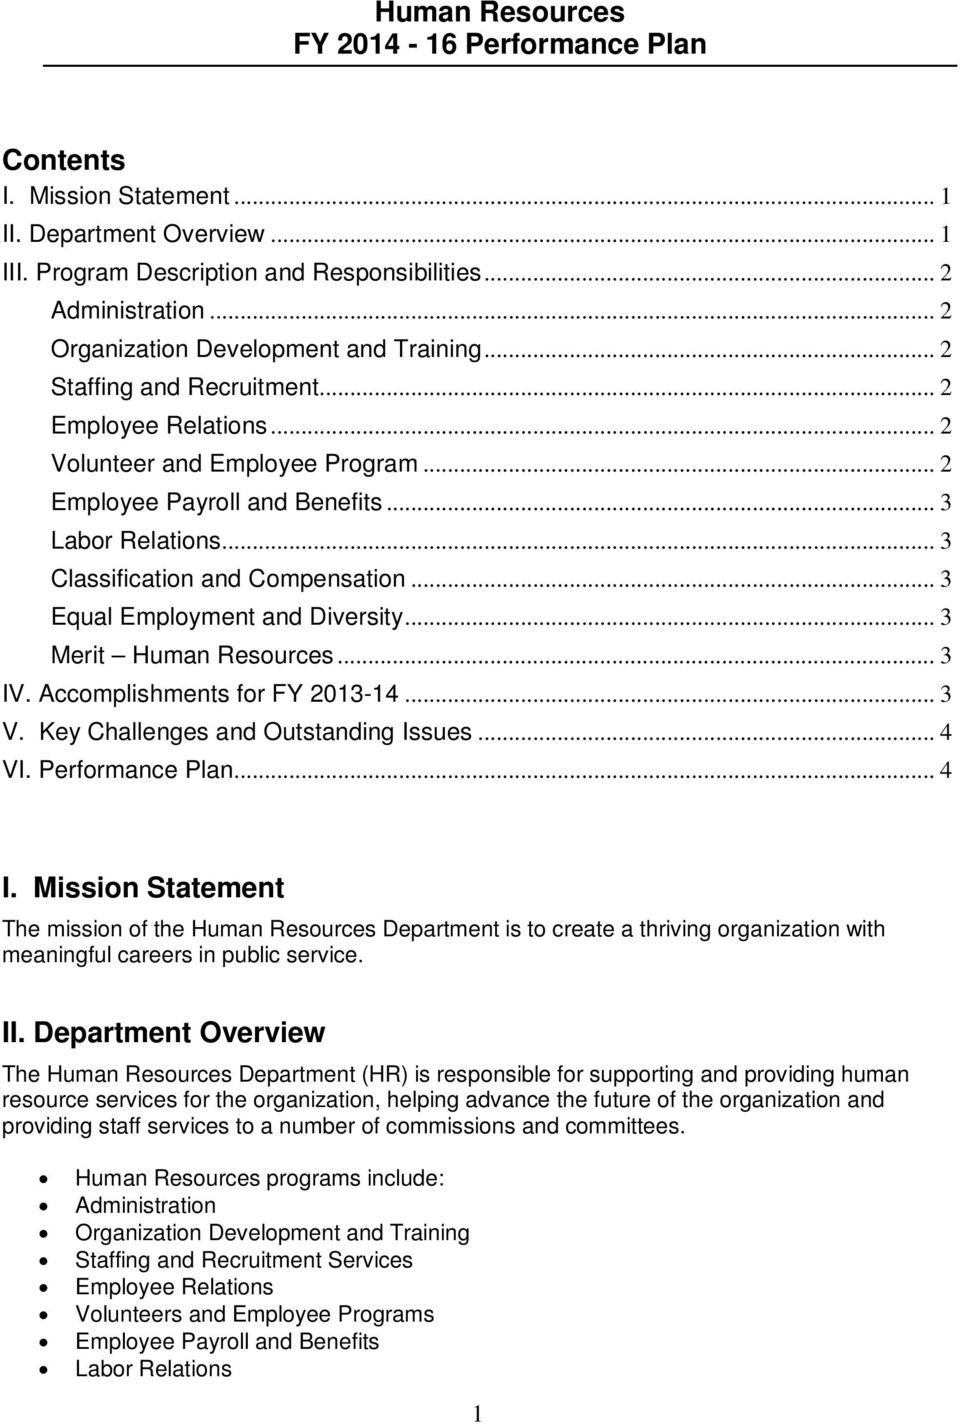 .. 3 Equal Employment and Diversity... 3 Merit Human Resources... 3 IV. Accomplishments for FY 2013-14... 3 V. Key Challenges and Outstanding Issues... 4 VI. Performance Plan... 4 I.